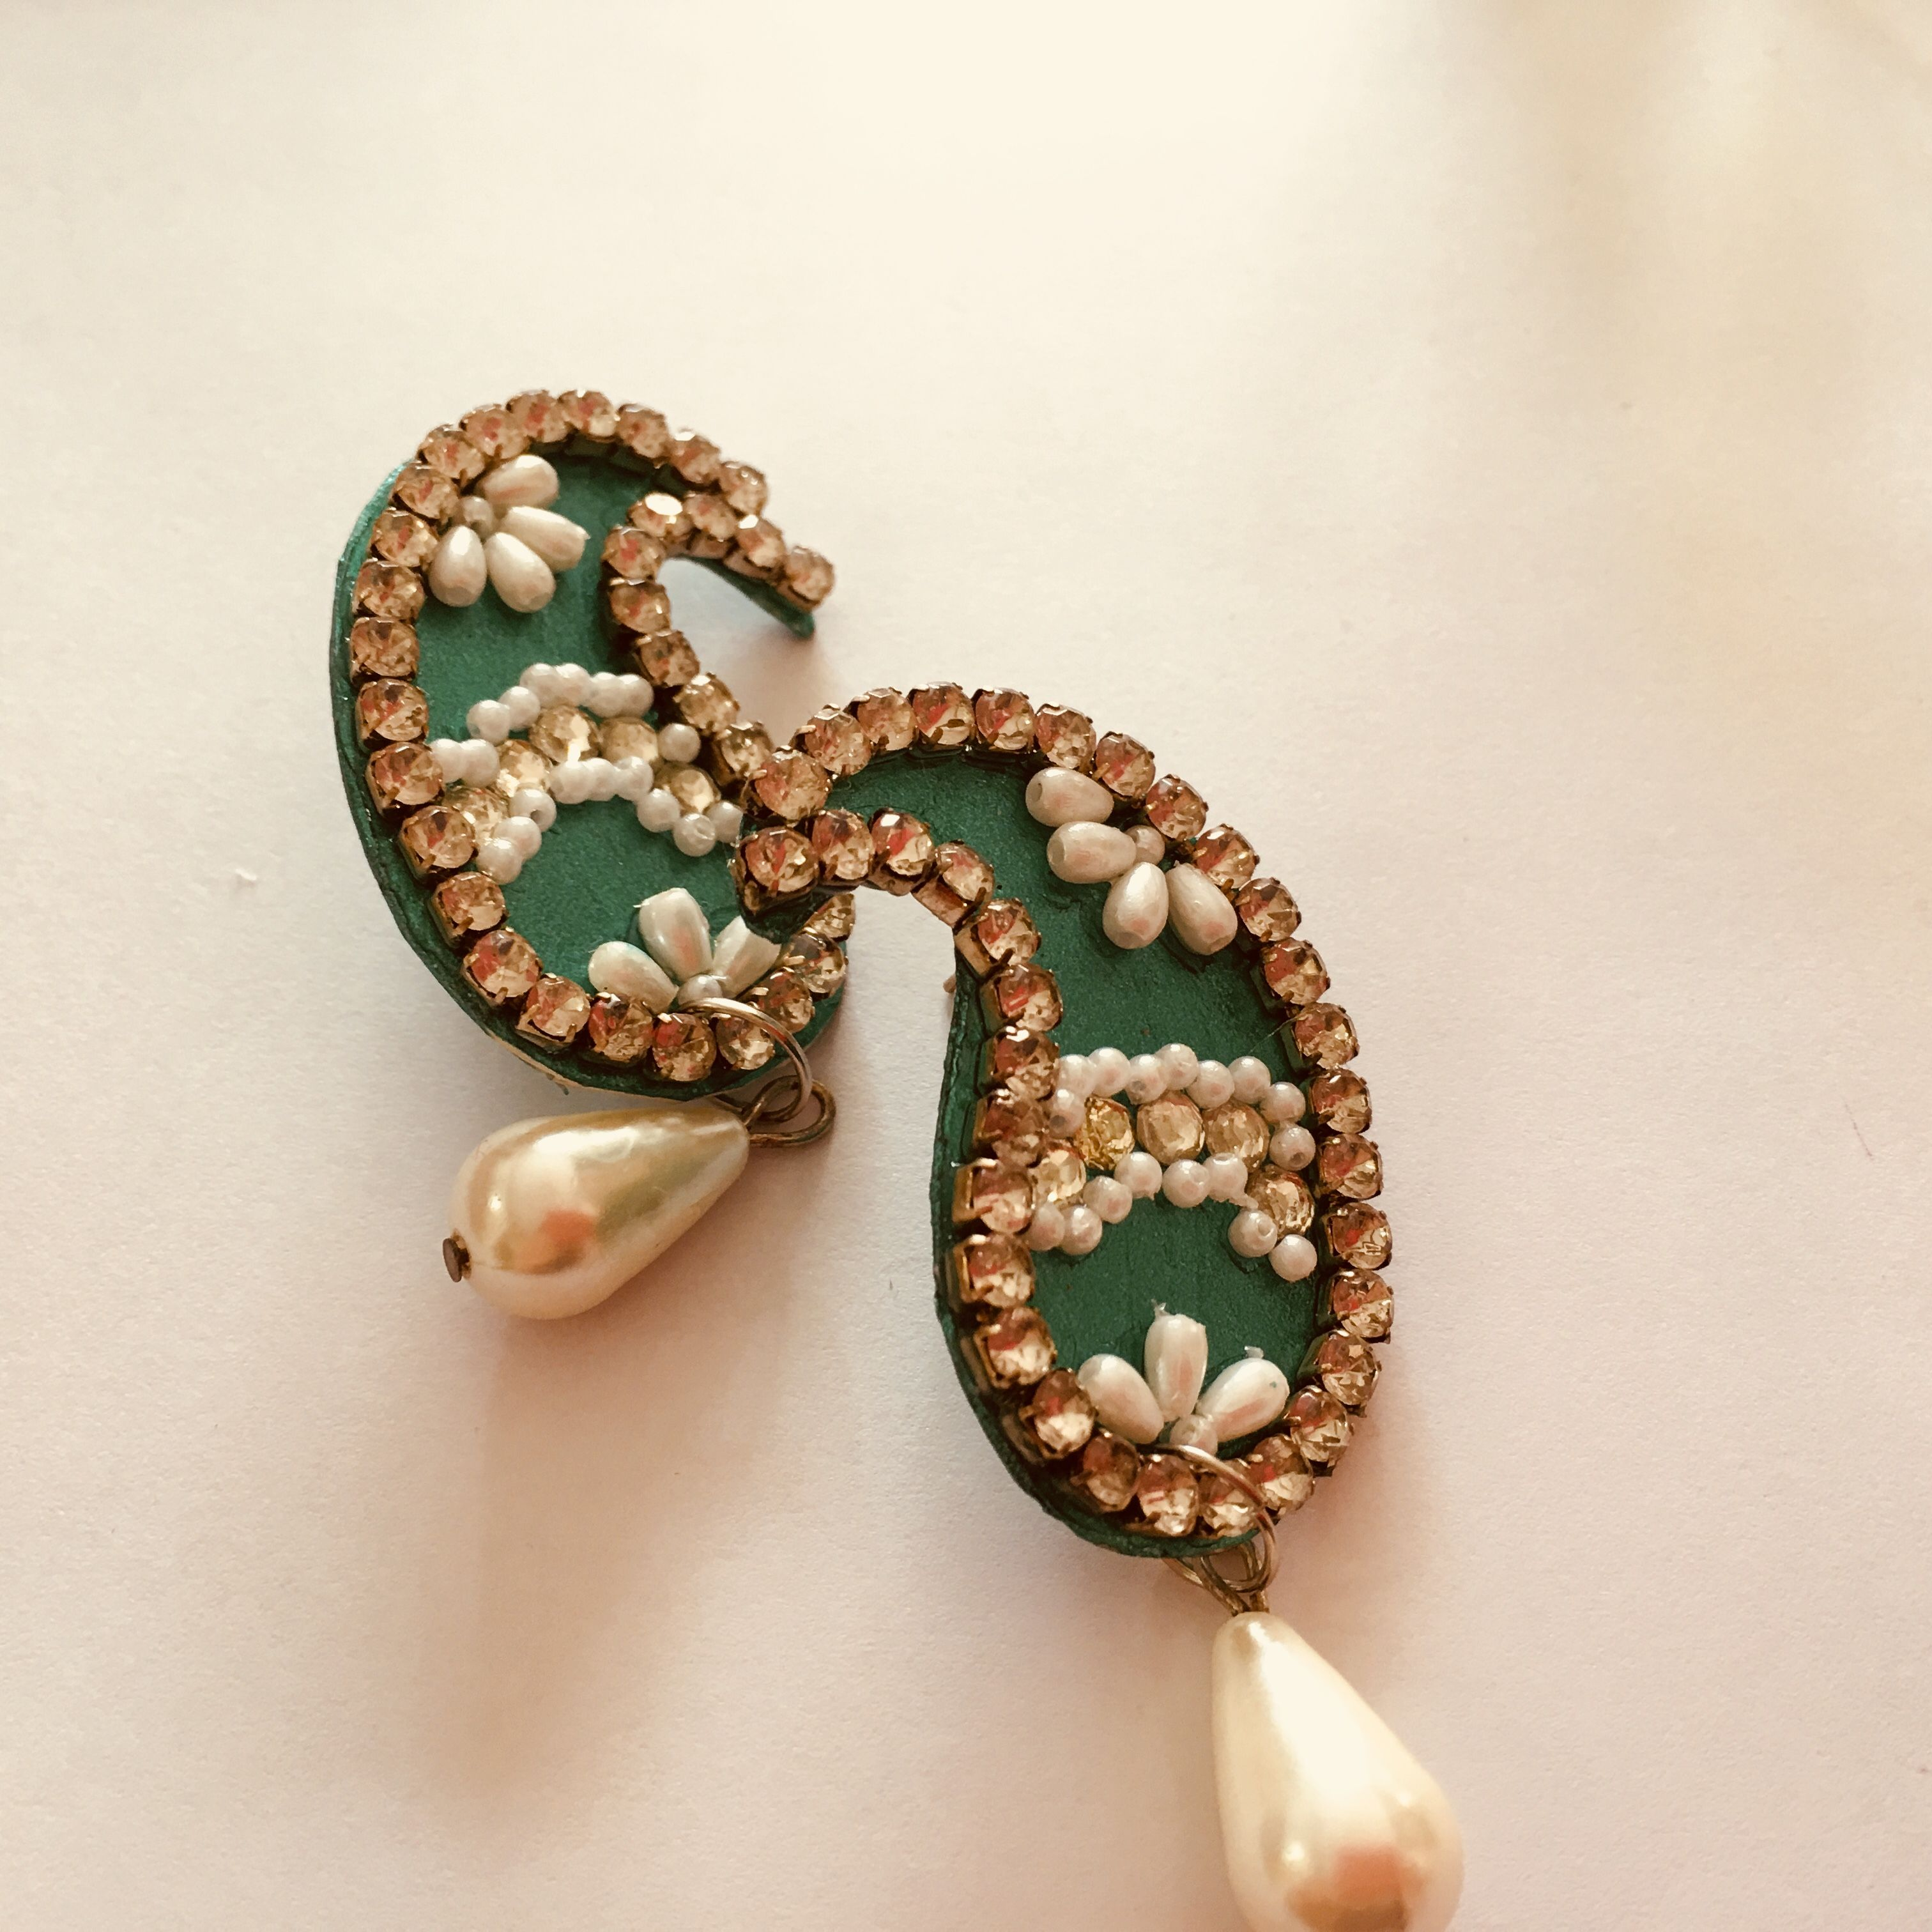 Pin by sarika saxena on quilling jewellery pinterest quilling